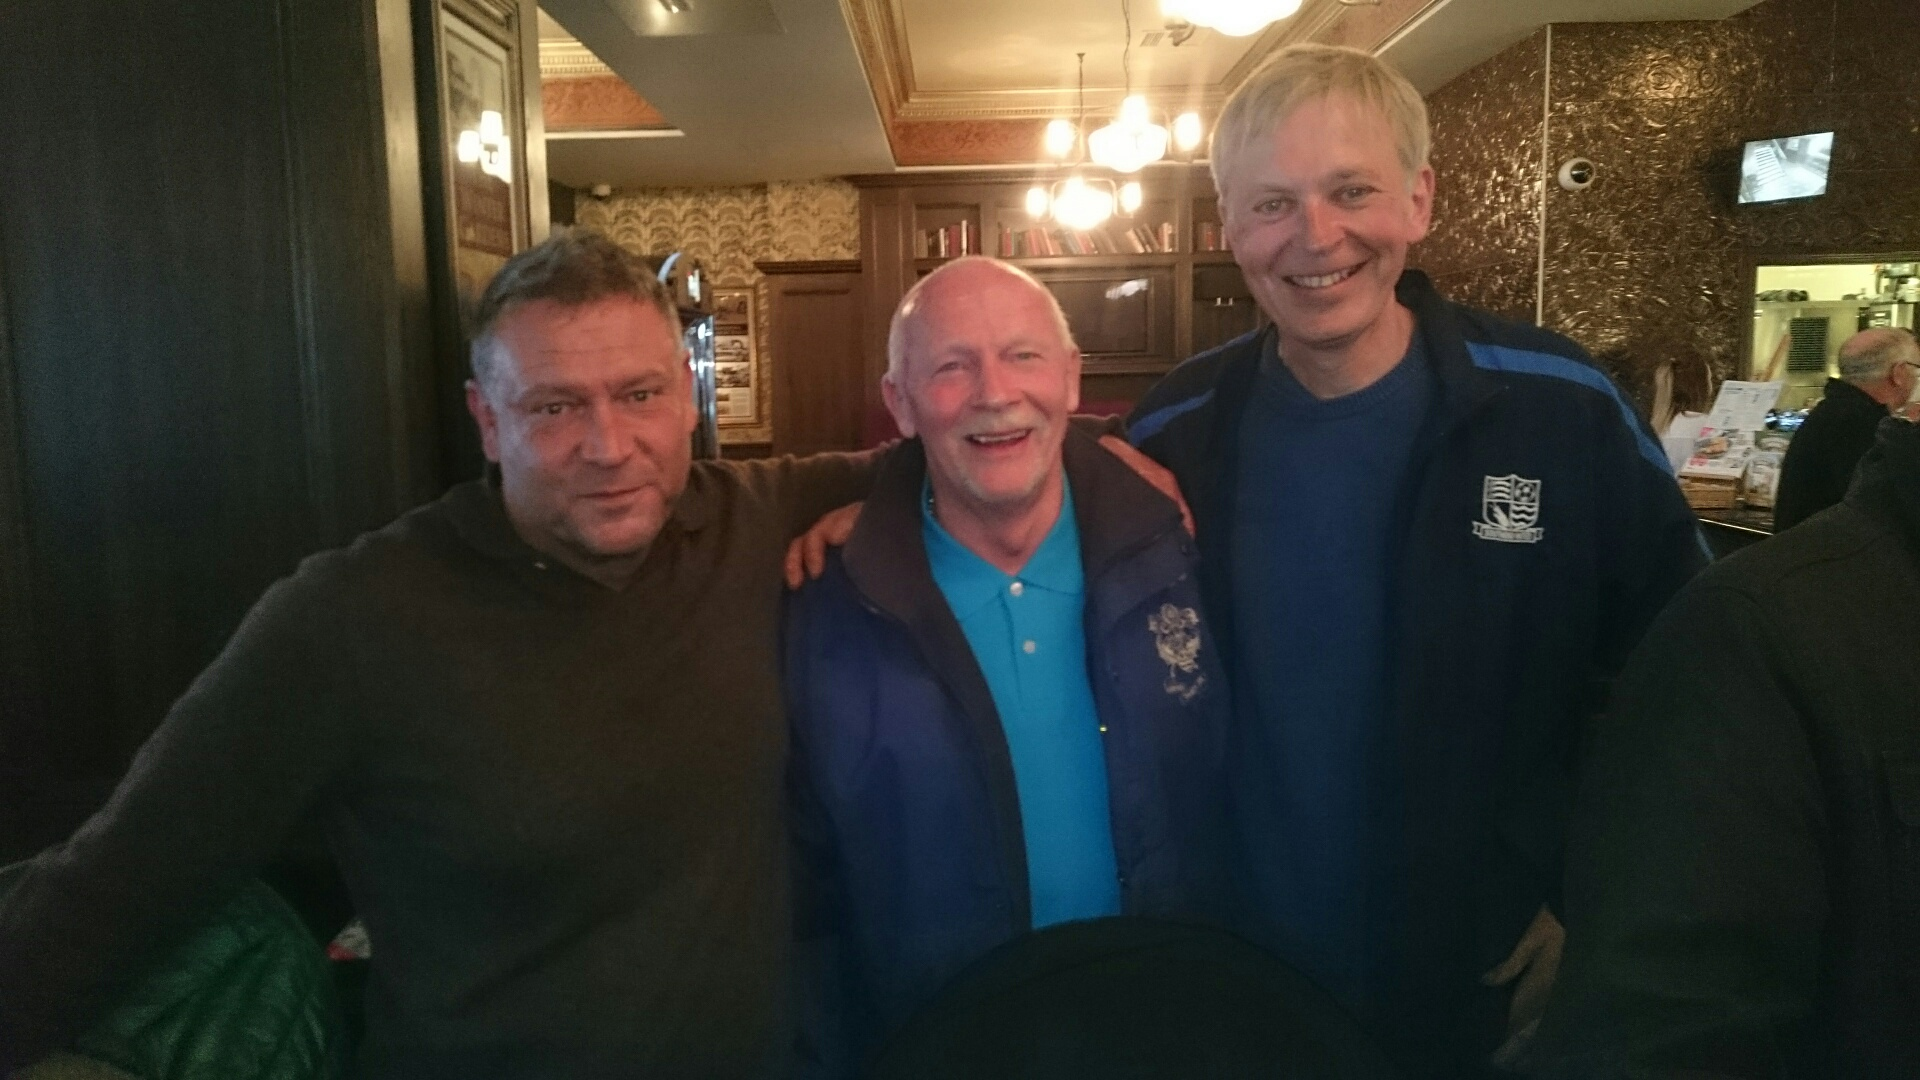 Andrew (right), his mate Harvey (left) with Derek Spence, former Southend United and Northern Ireland international, who did the foreword for the book, in the middle, when Andrew meet up in a pub before Andrew's 92nd game at Blackpool in April 2016.